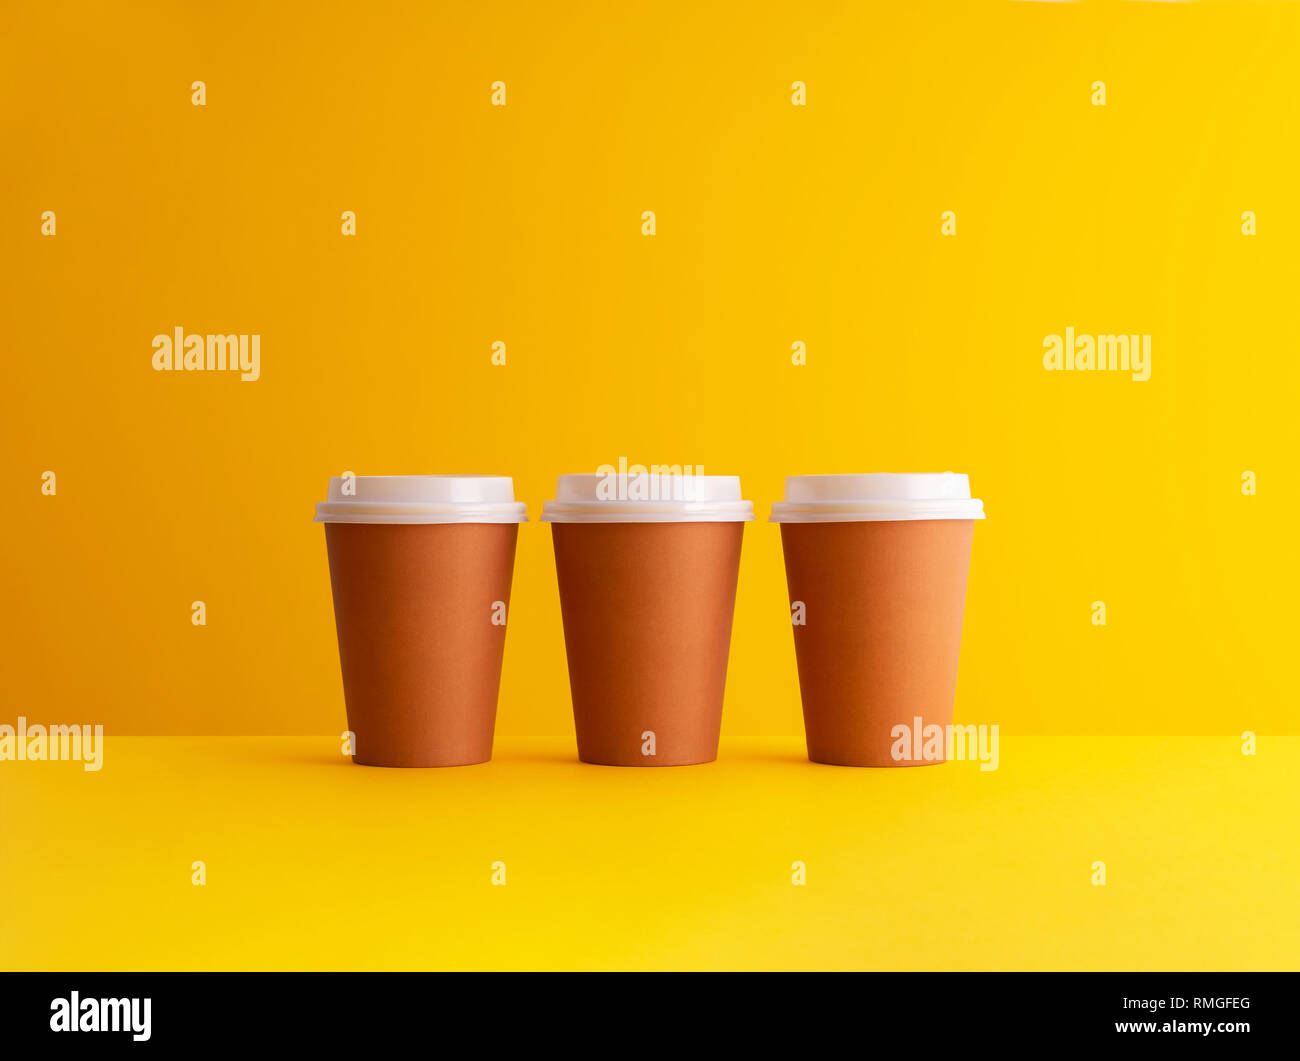 afc7bbfc752 Multiple disposable coffee cups organized in a row over yellow background -  Stock Image